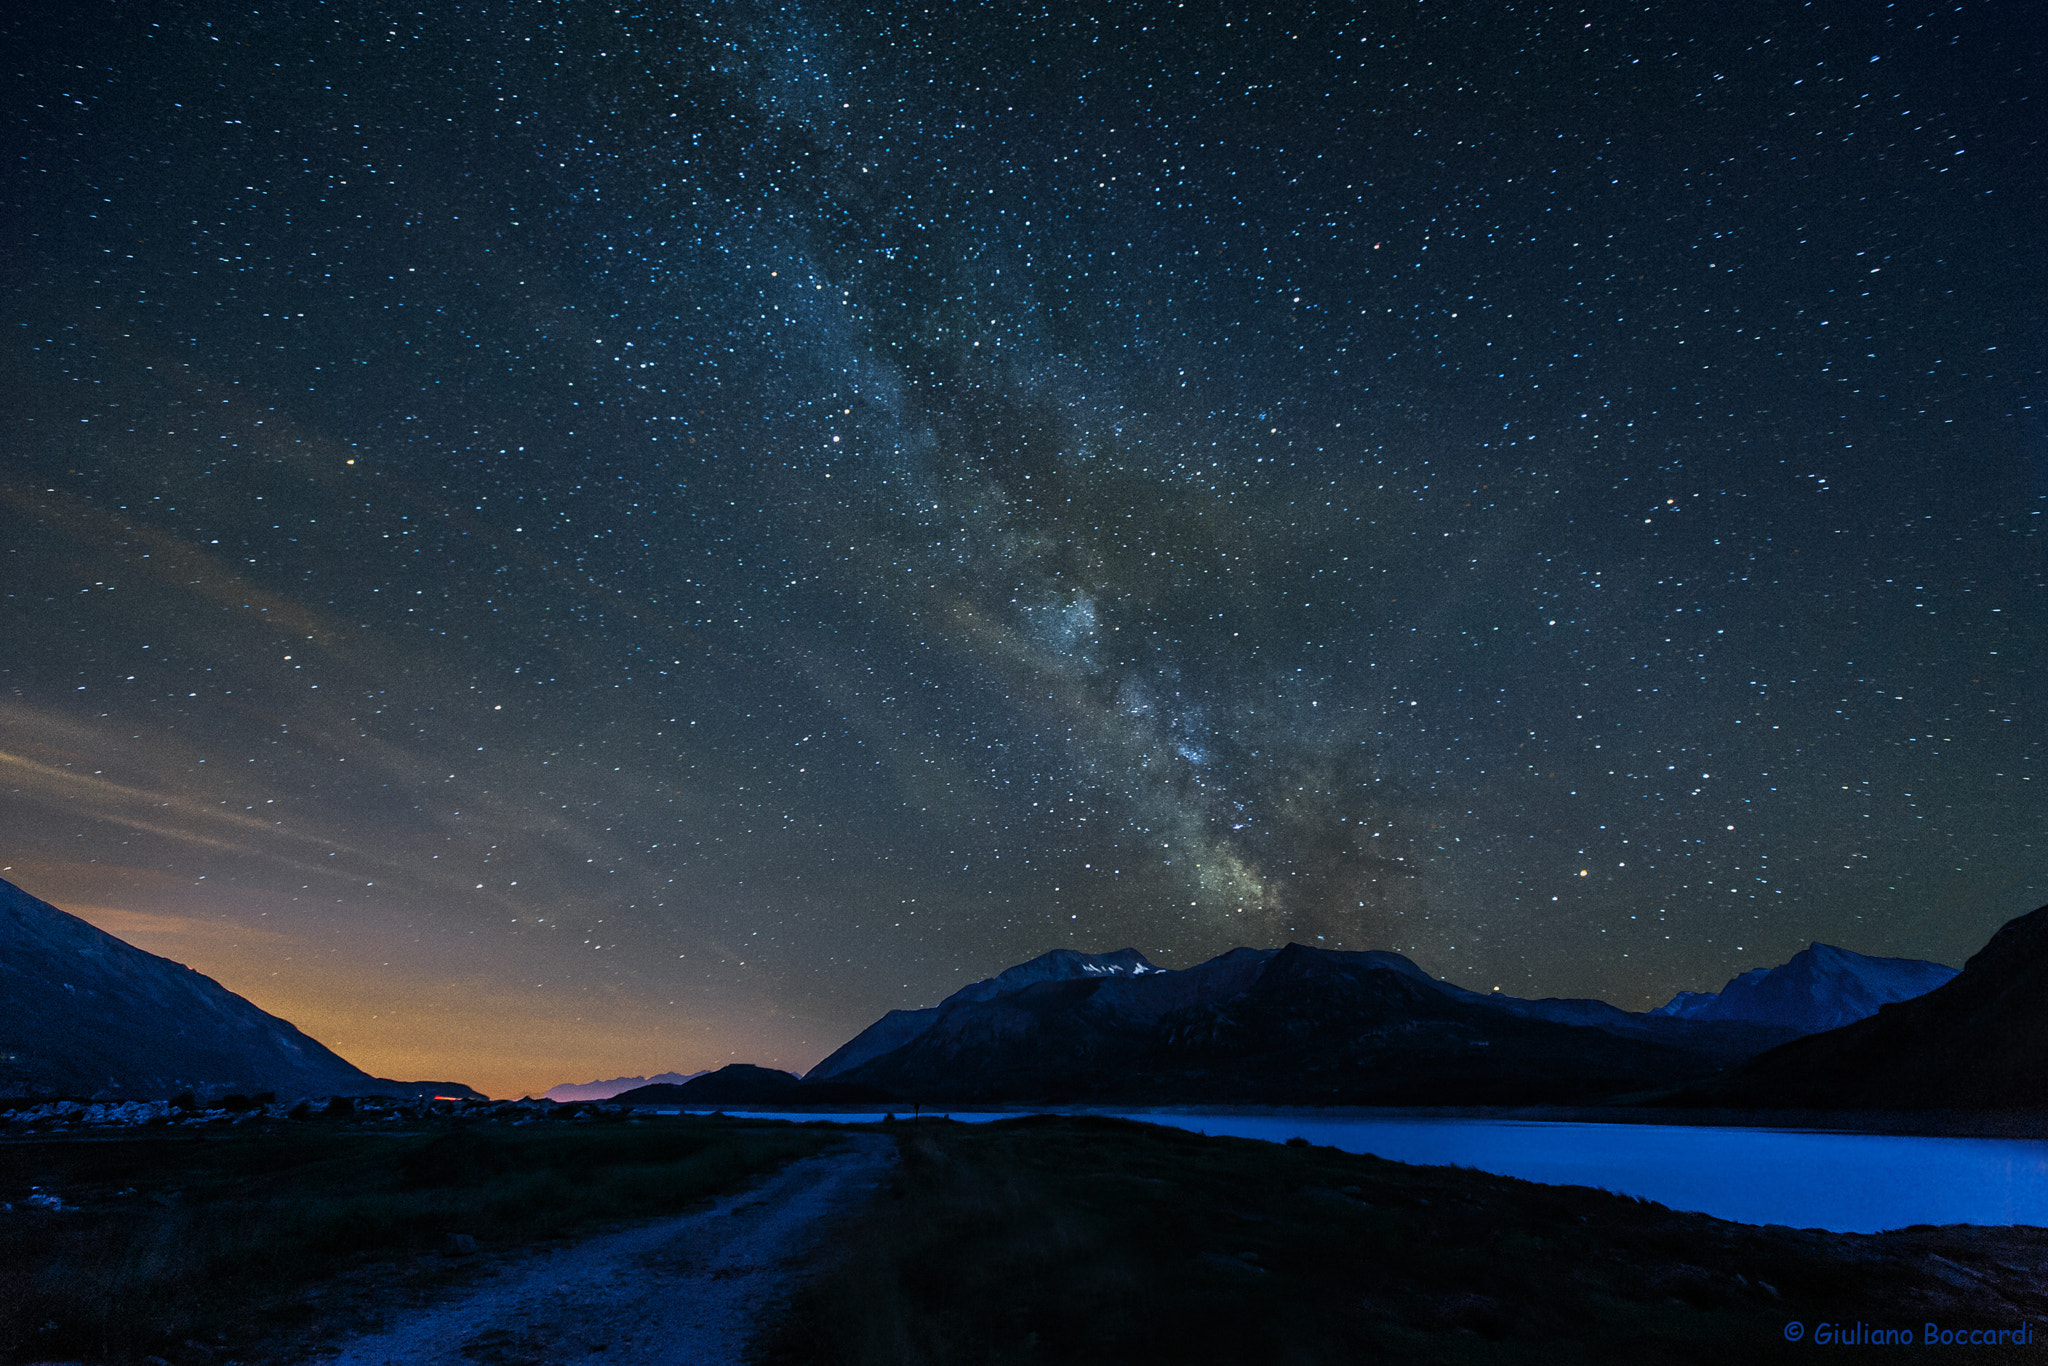 Photograph MilkyWay2 by Giuliano Boccardi on 500px